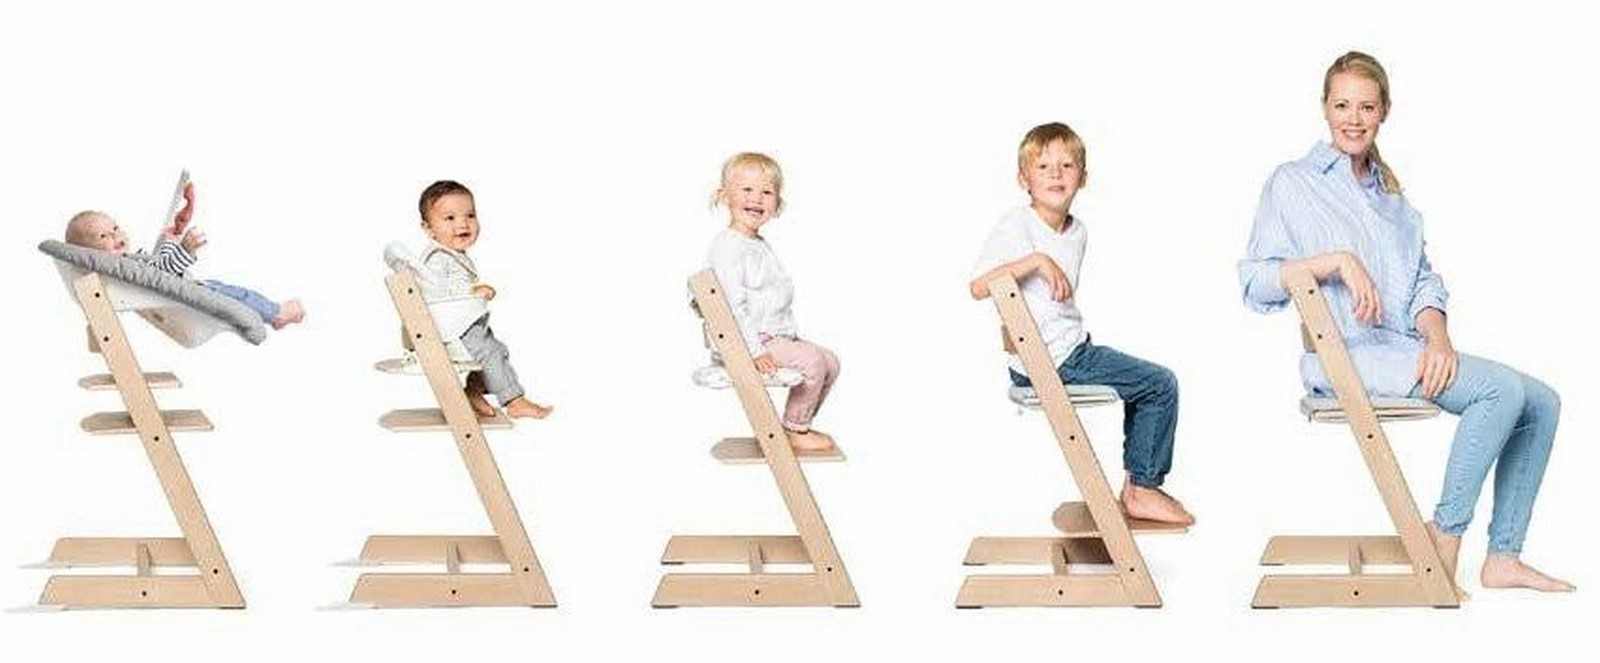 A Brief History of Kids Furniture and safety measures - Sheet22